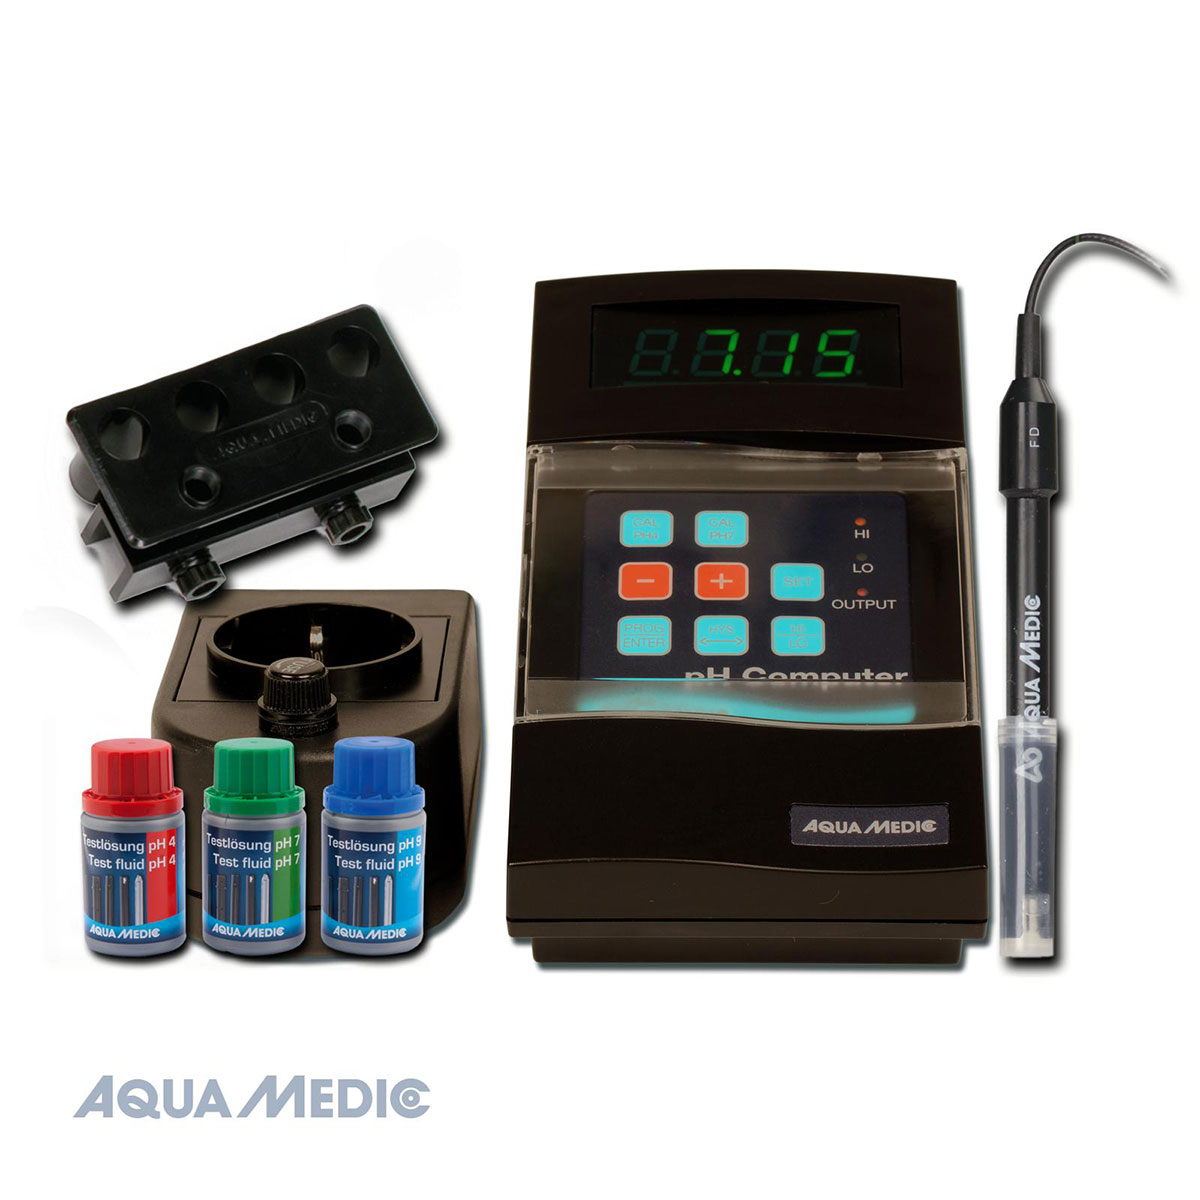 aqua medic ph computer set g nstig kaufen bei zooroyal. Black Bedroom Furniture Sets. Home Design Ideas